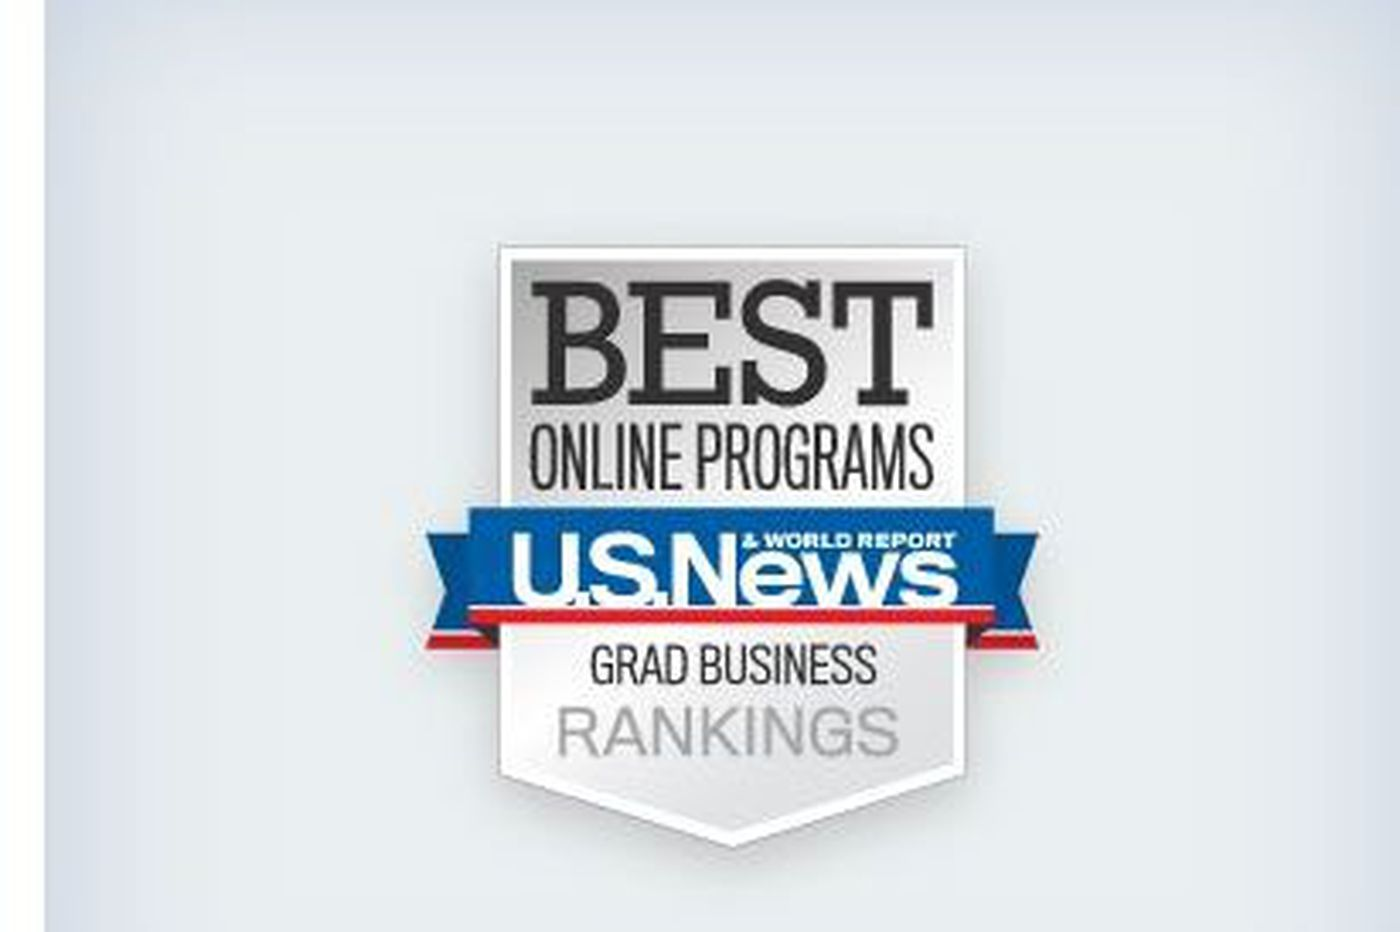 Temple online MBA kicked out of No. 1 spot in US News rankings; now 'unranked' due to data error